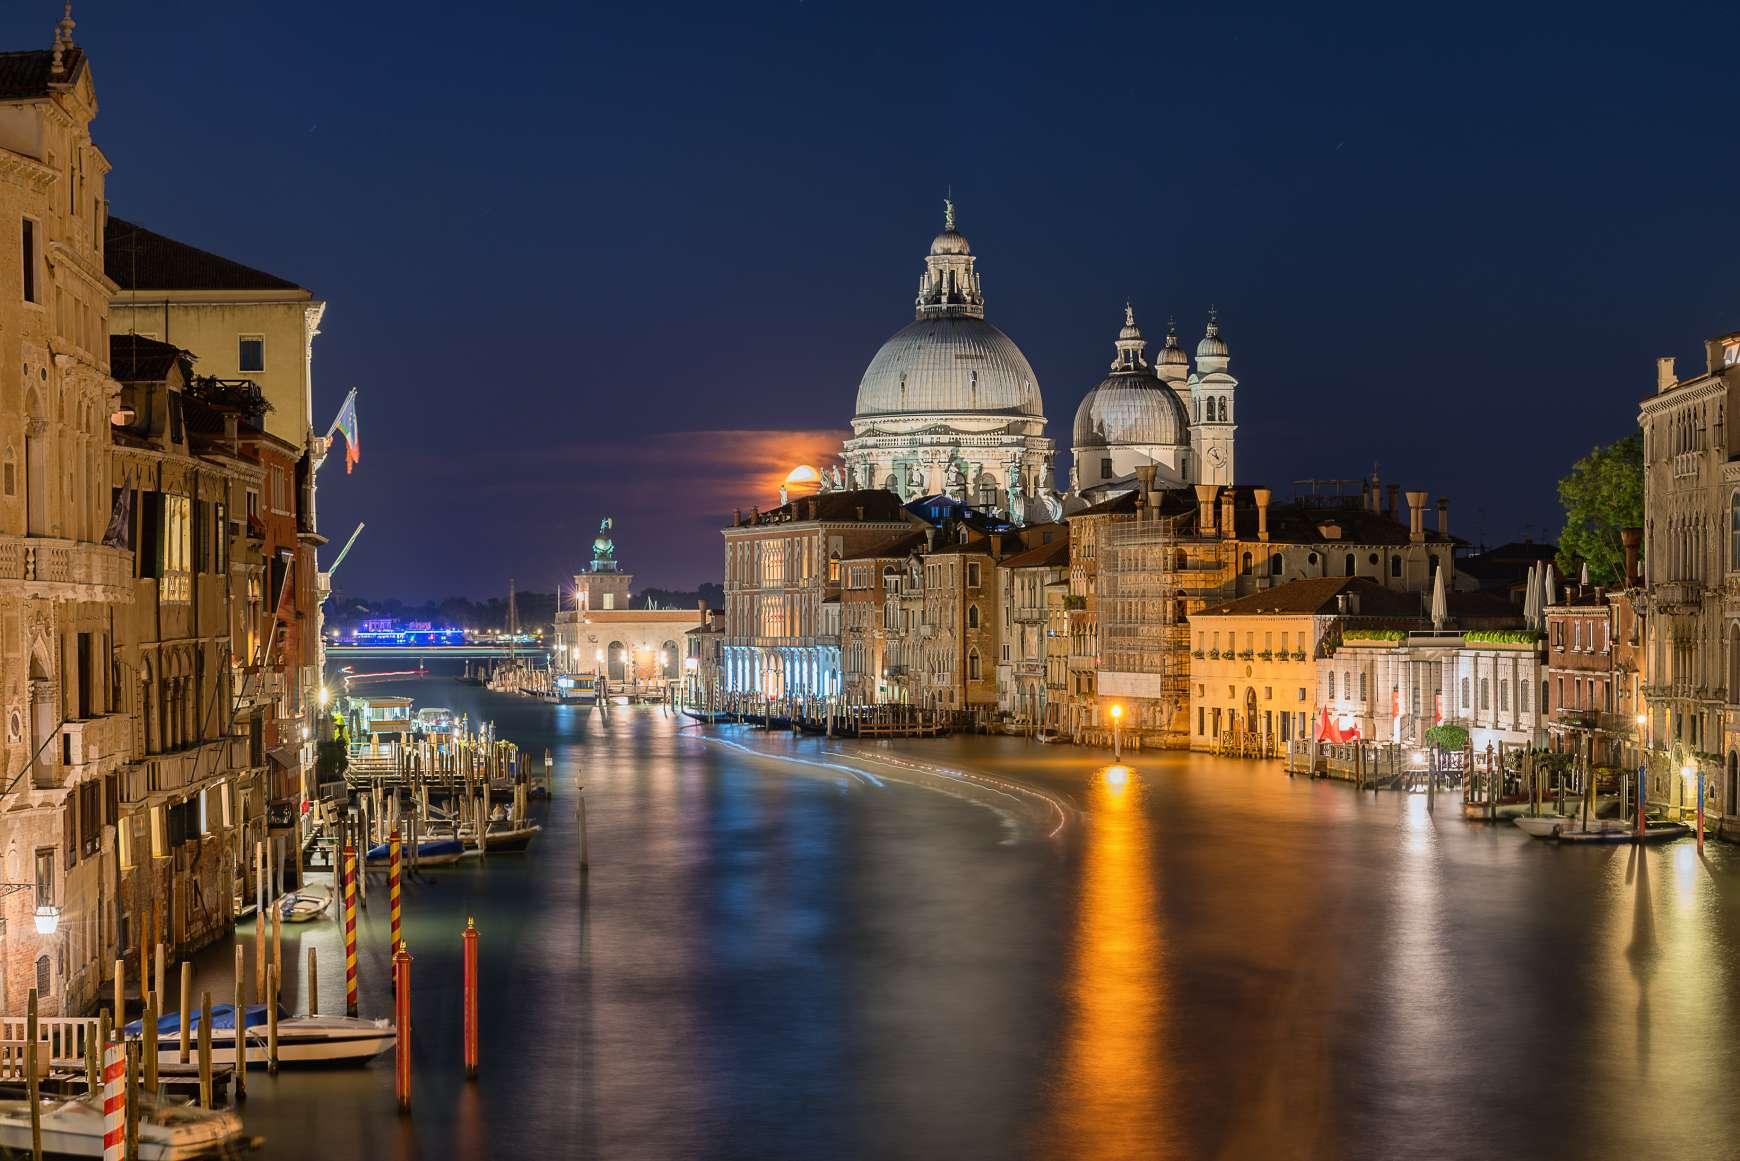 Night lights shining down on the water of the Grand Canal  in Venice